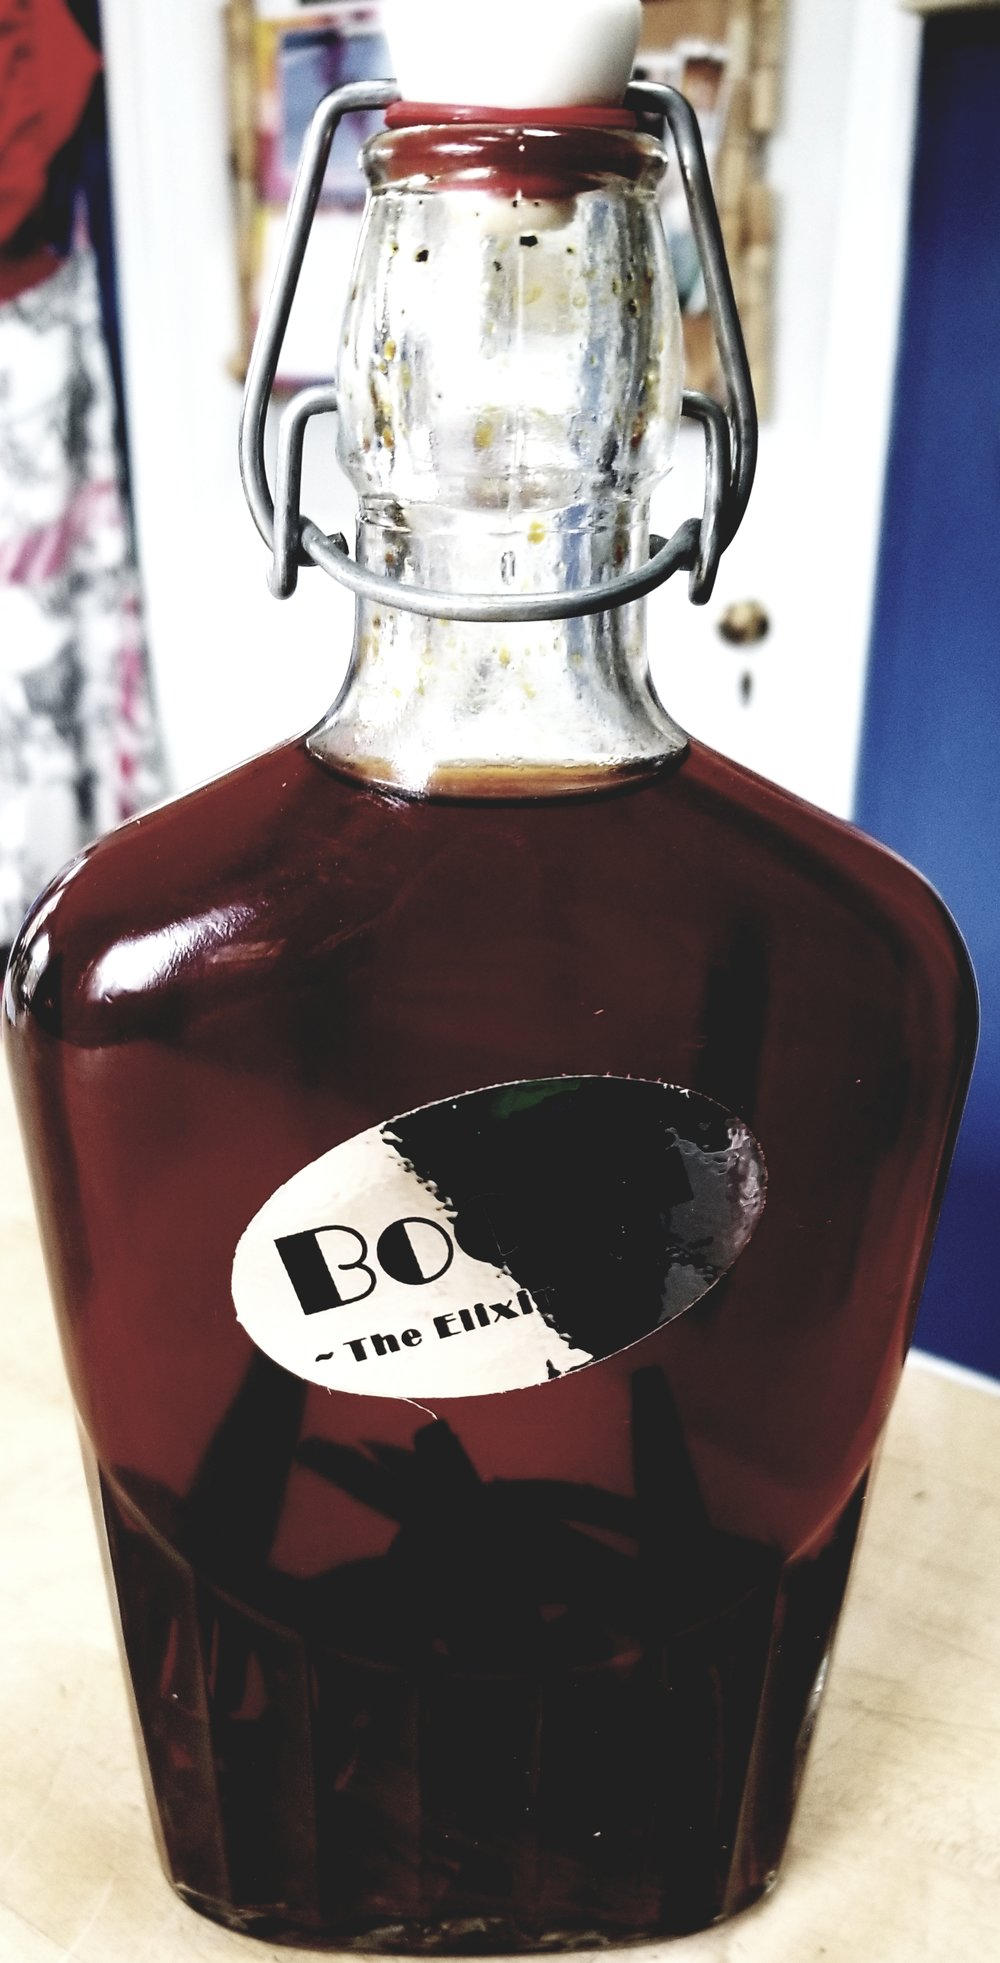 Vanilla beans and BooZi treated Vodka for 8 weeks = Pure Vanilla extract